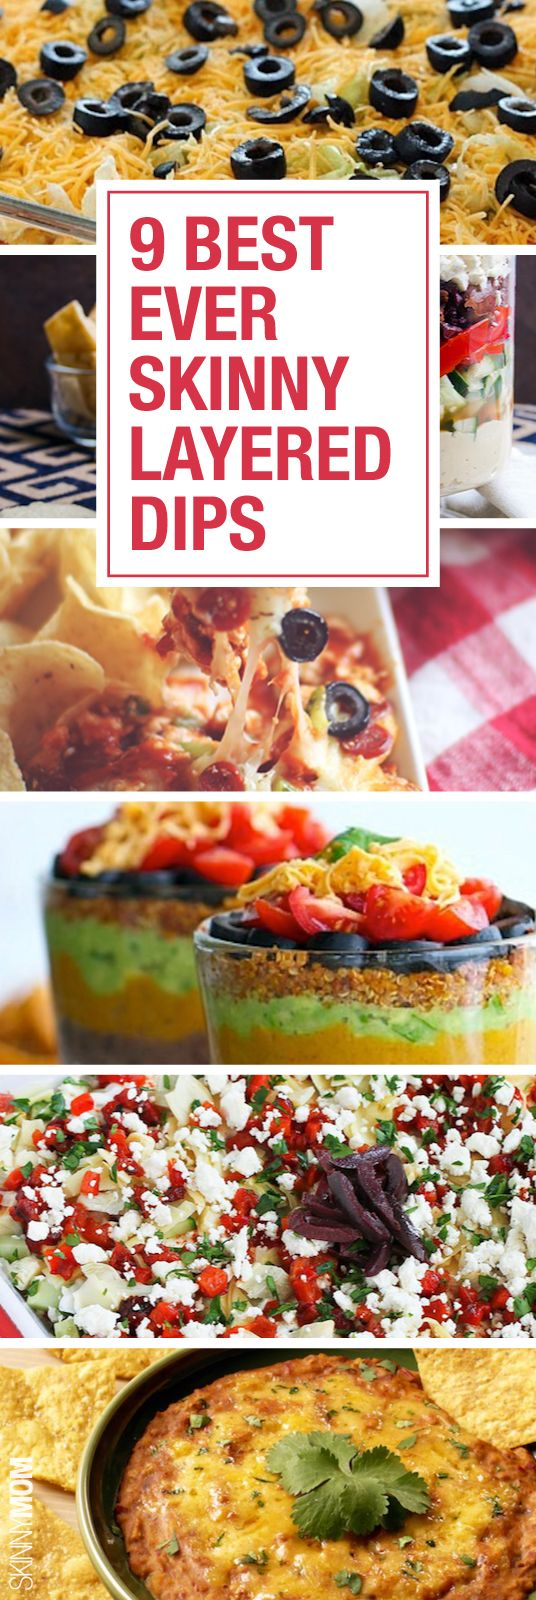 These dips are great for a healthy snack, especially for you next get-together.